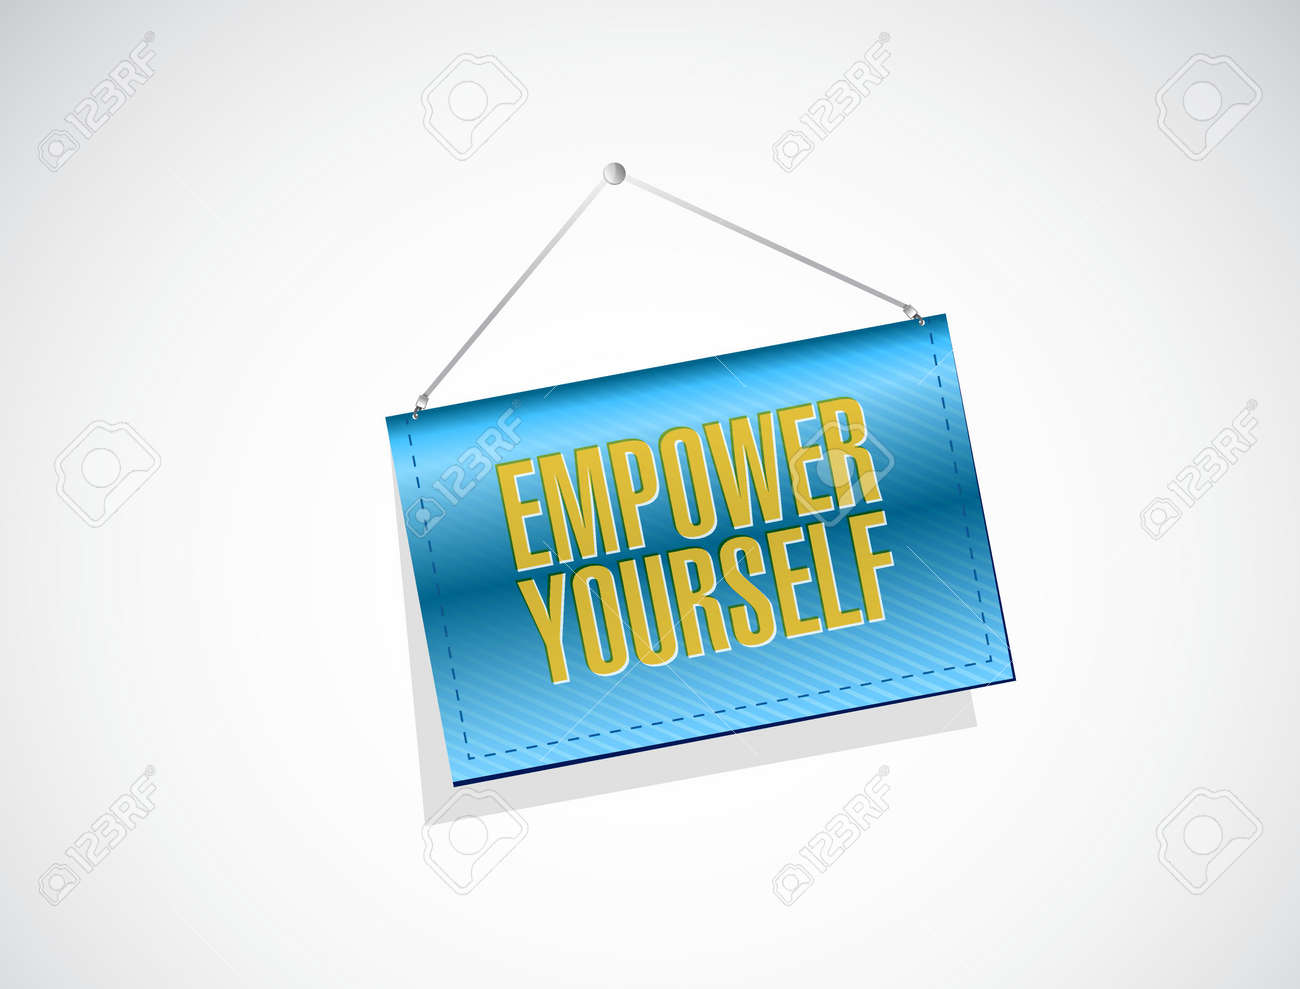 Empower yourself banner sign concept illustration design graphic empower yourself banner sign concept illustration design graphic stock vector 47069304 solutioingenieria Image collections